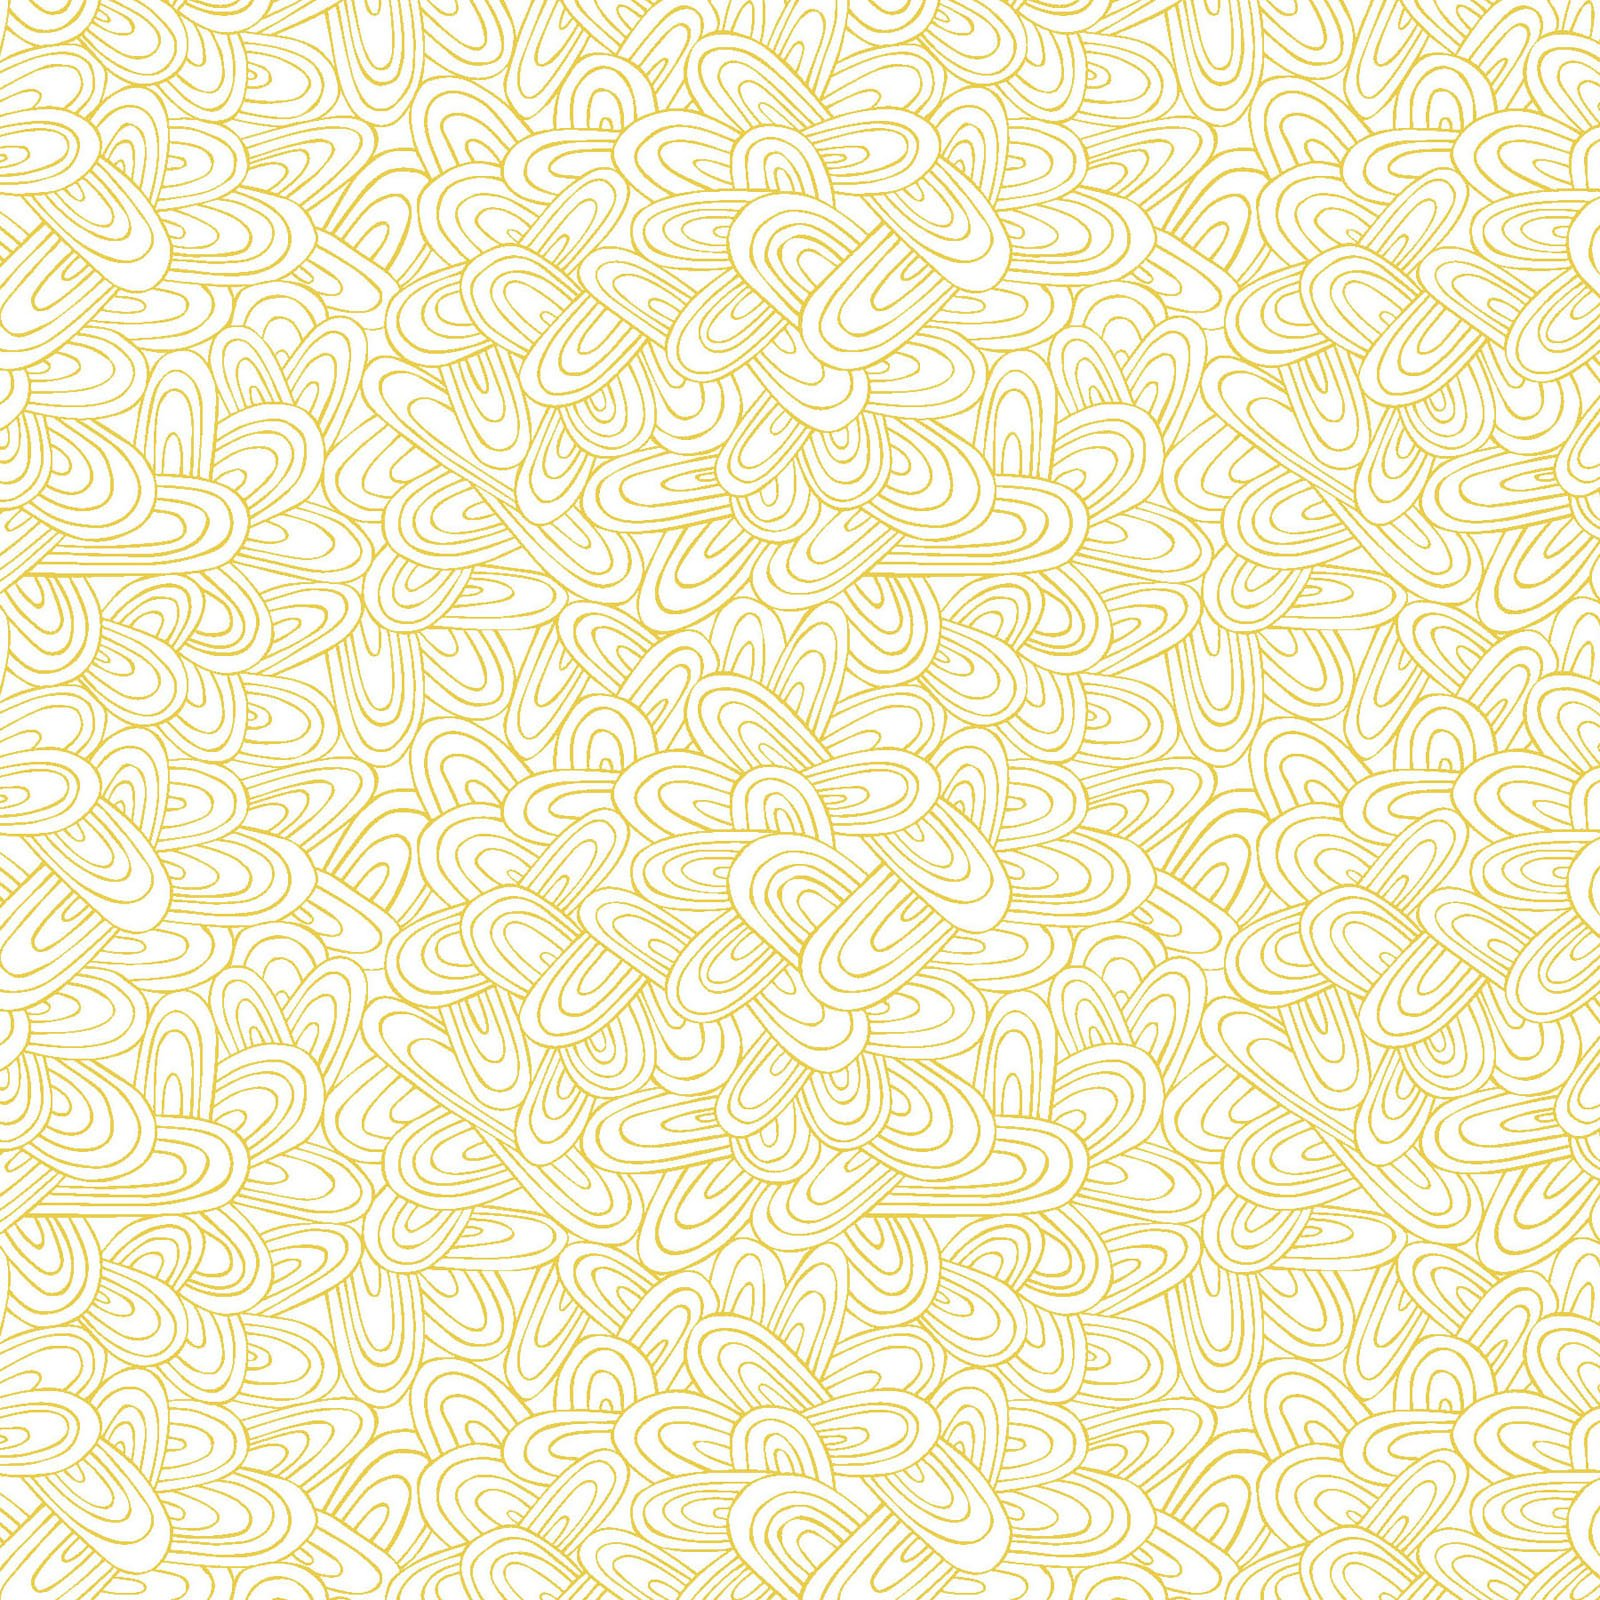 WHIM-4412 Y - WHIMSY BY HANG TIGHT STUDIO JUST SWELL YELLOW